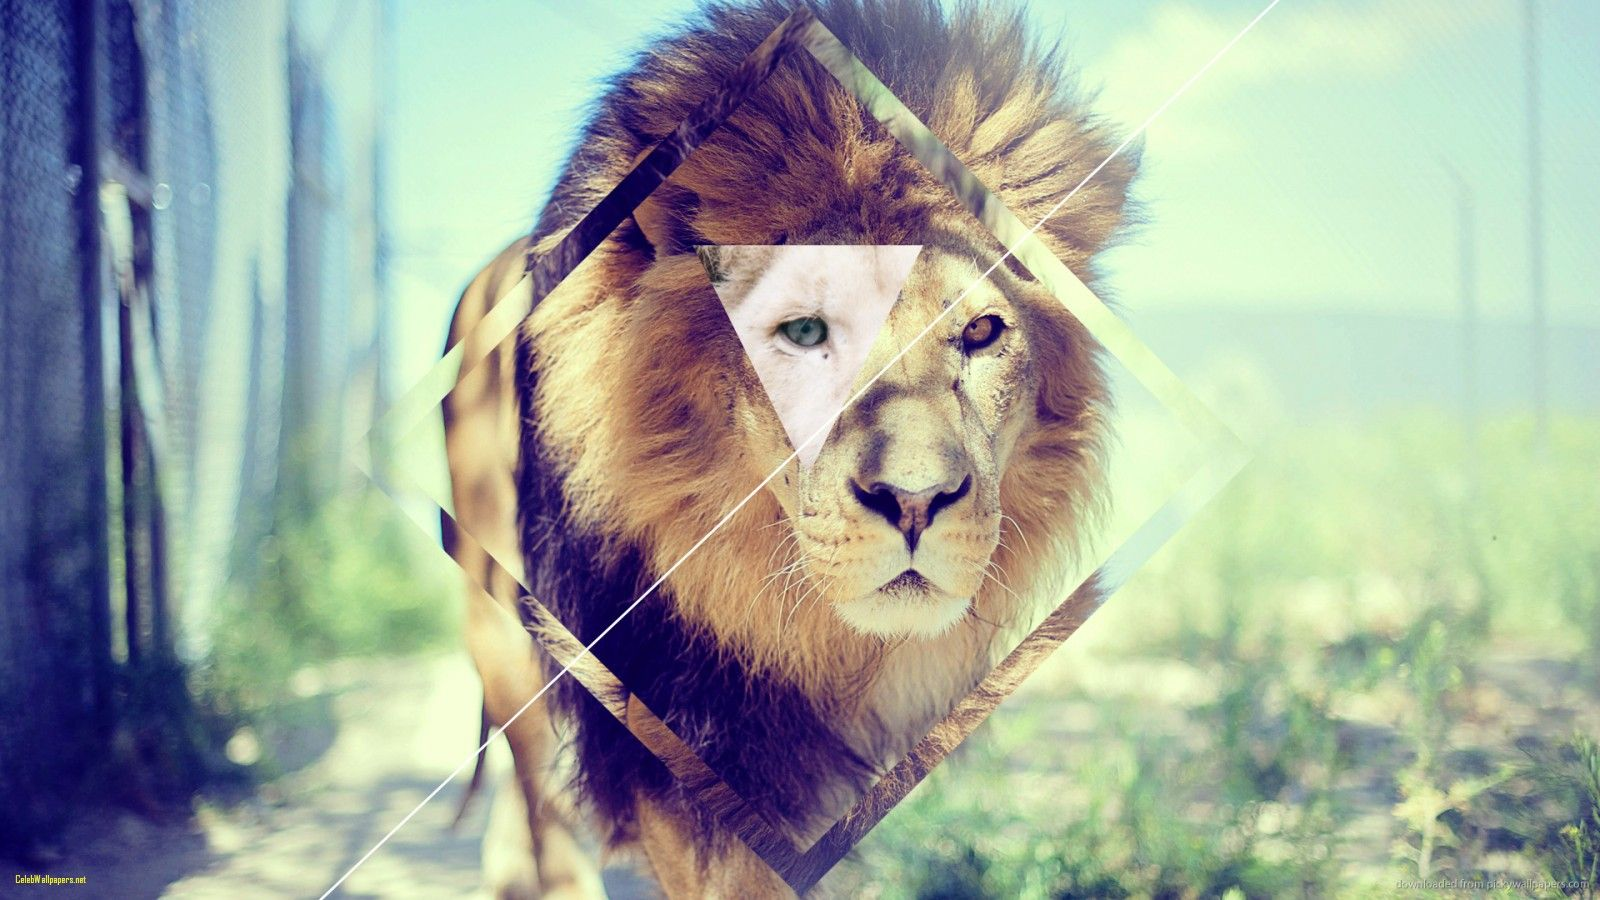 Epic Wallpaperz: Top Free Epic Lion Backgrounds